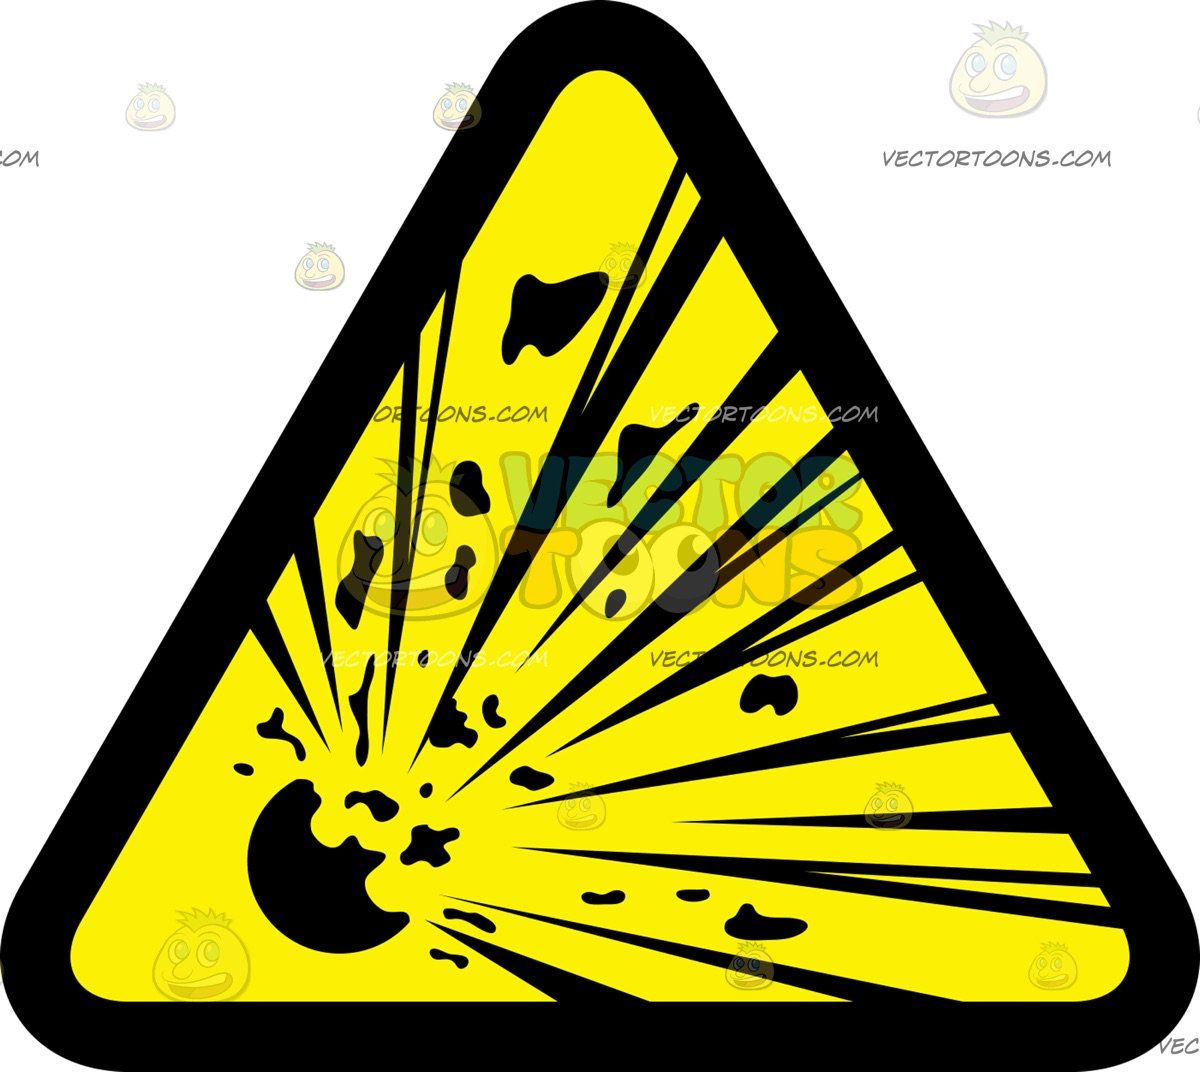 Explosive Hazard Sign A triangular sign with a black